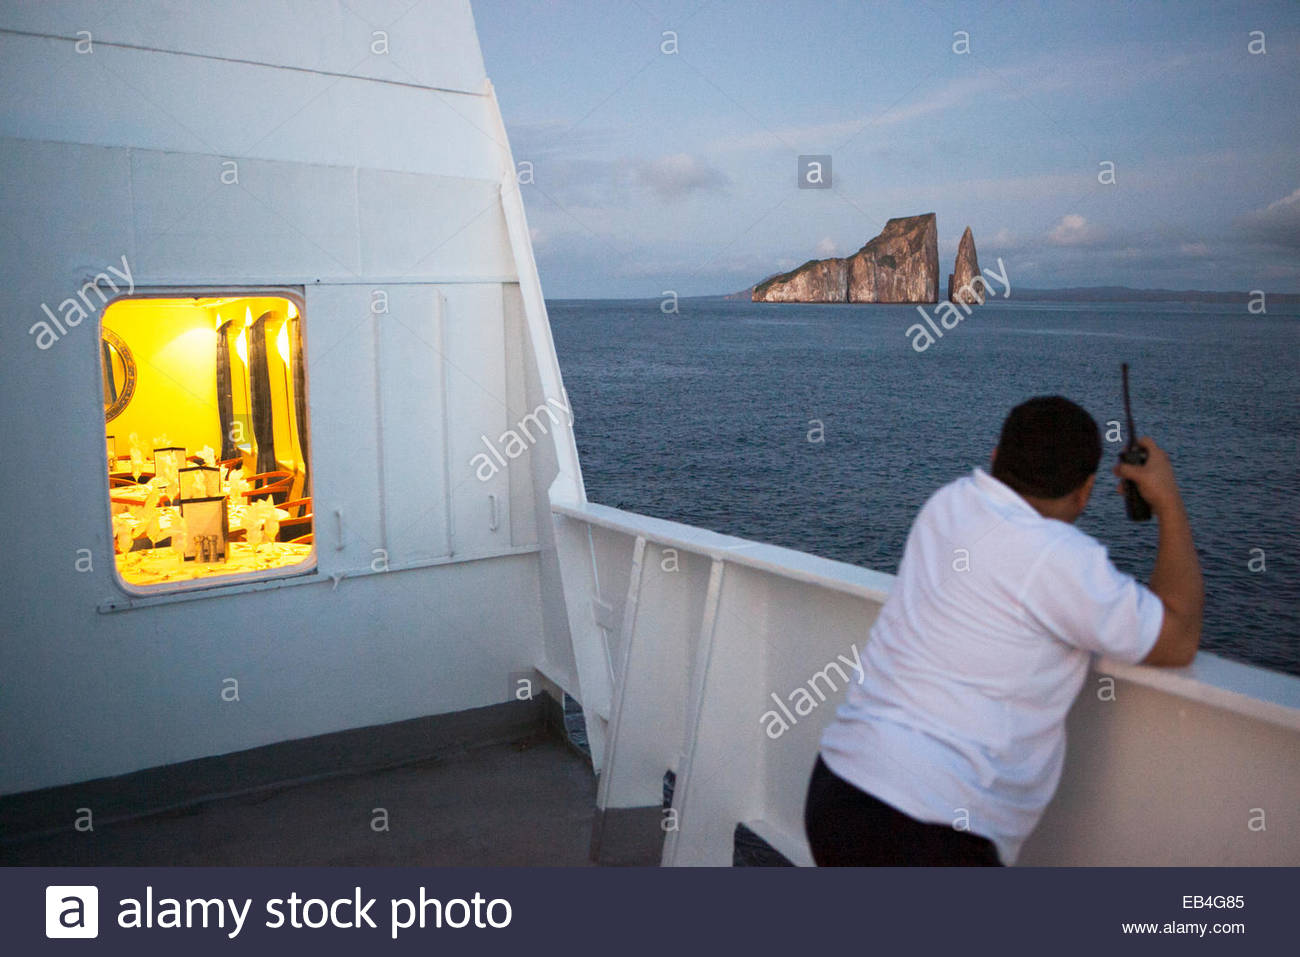 A staff member aboard a tourism expedition vessel looks out at rock formations en route to the Galapagos Islands. Stock Photo